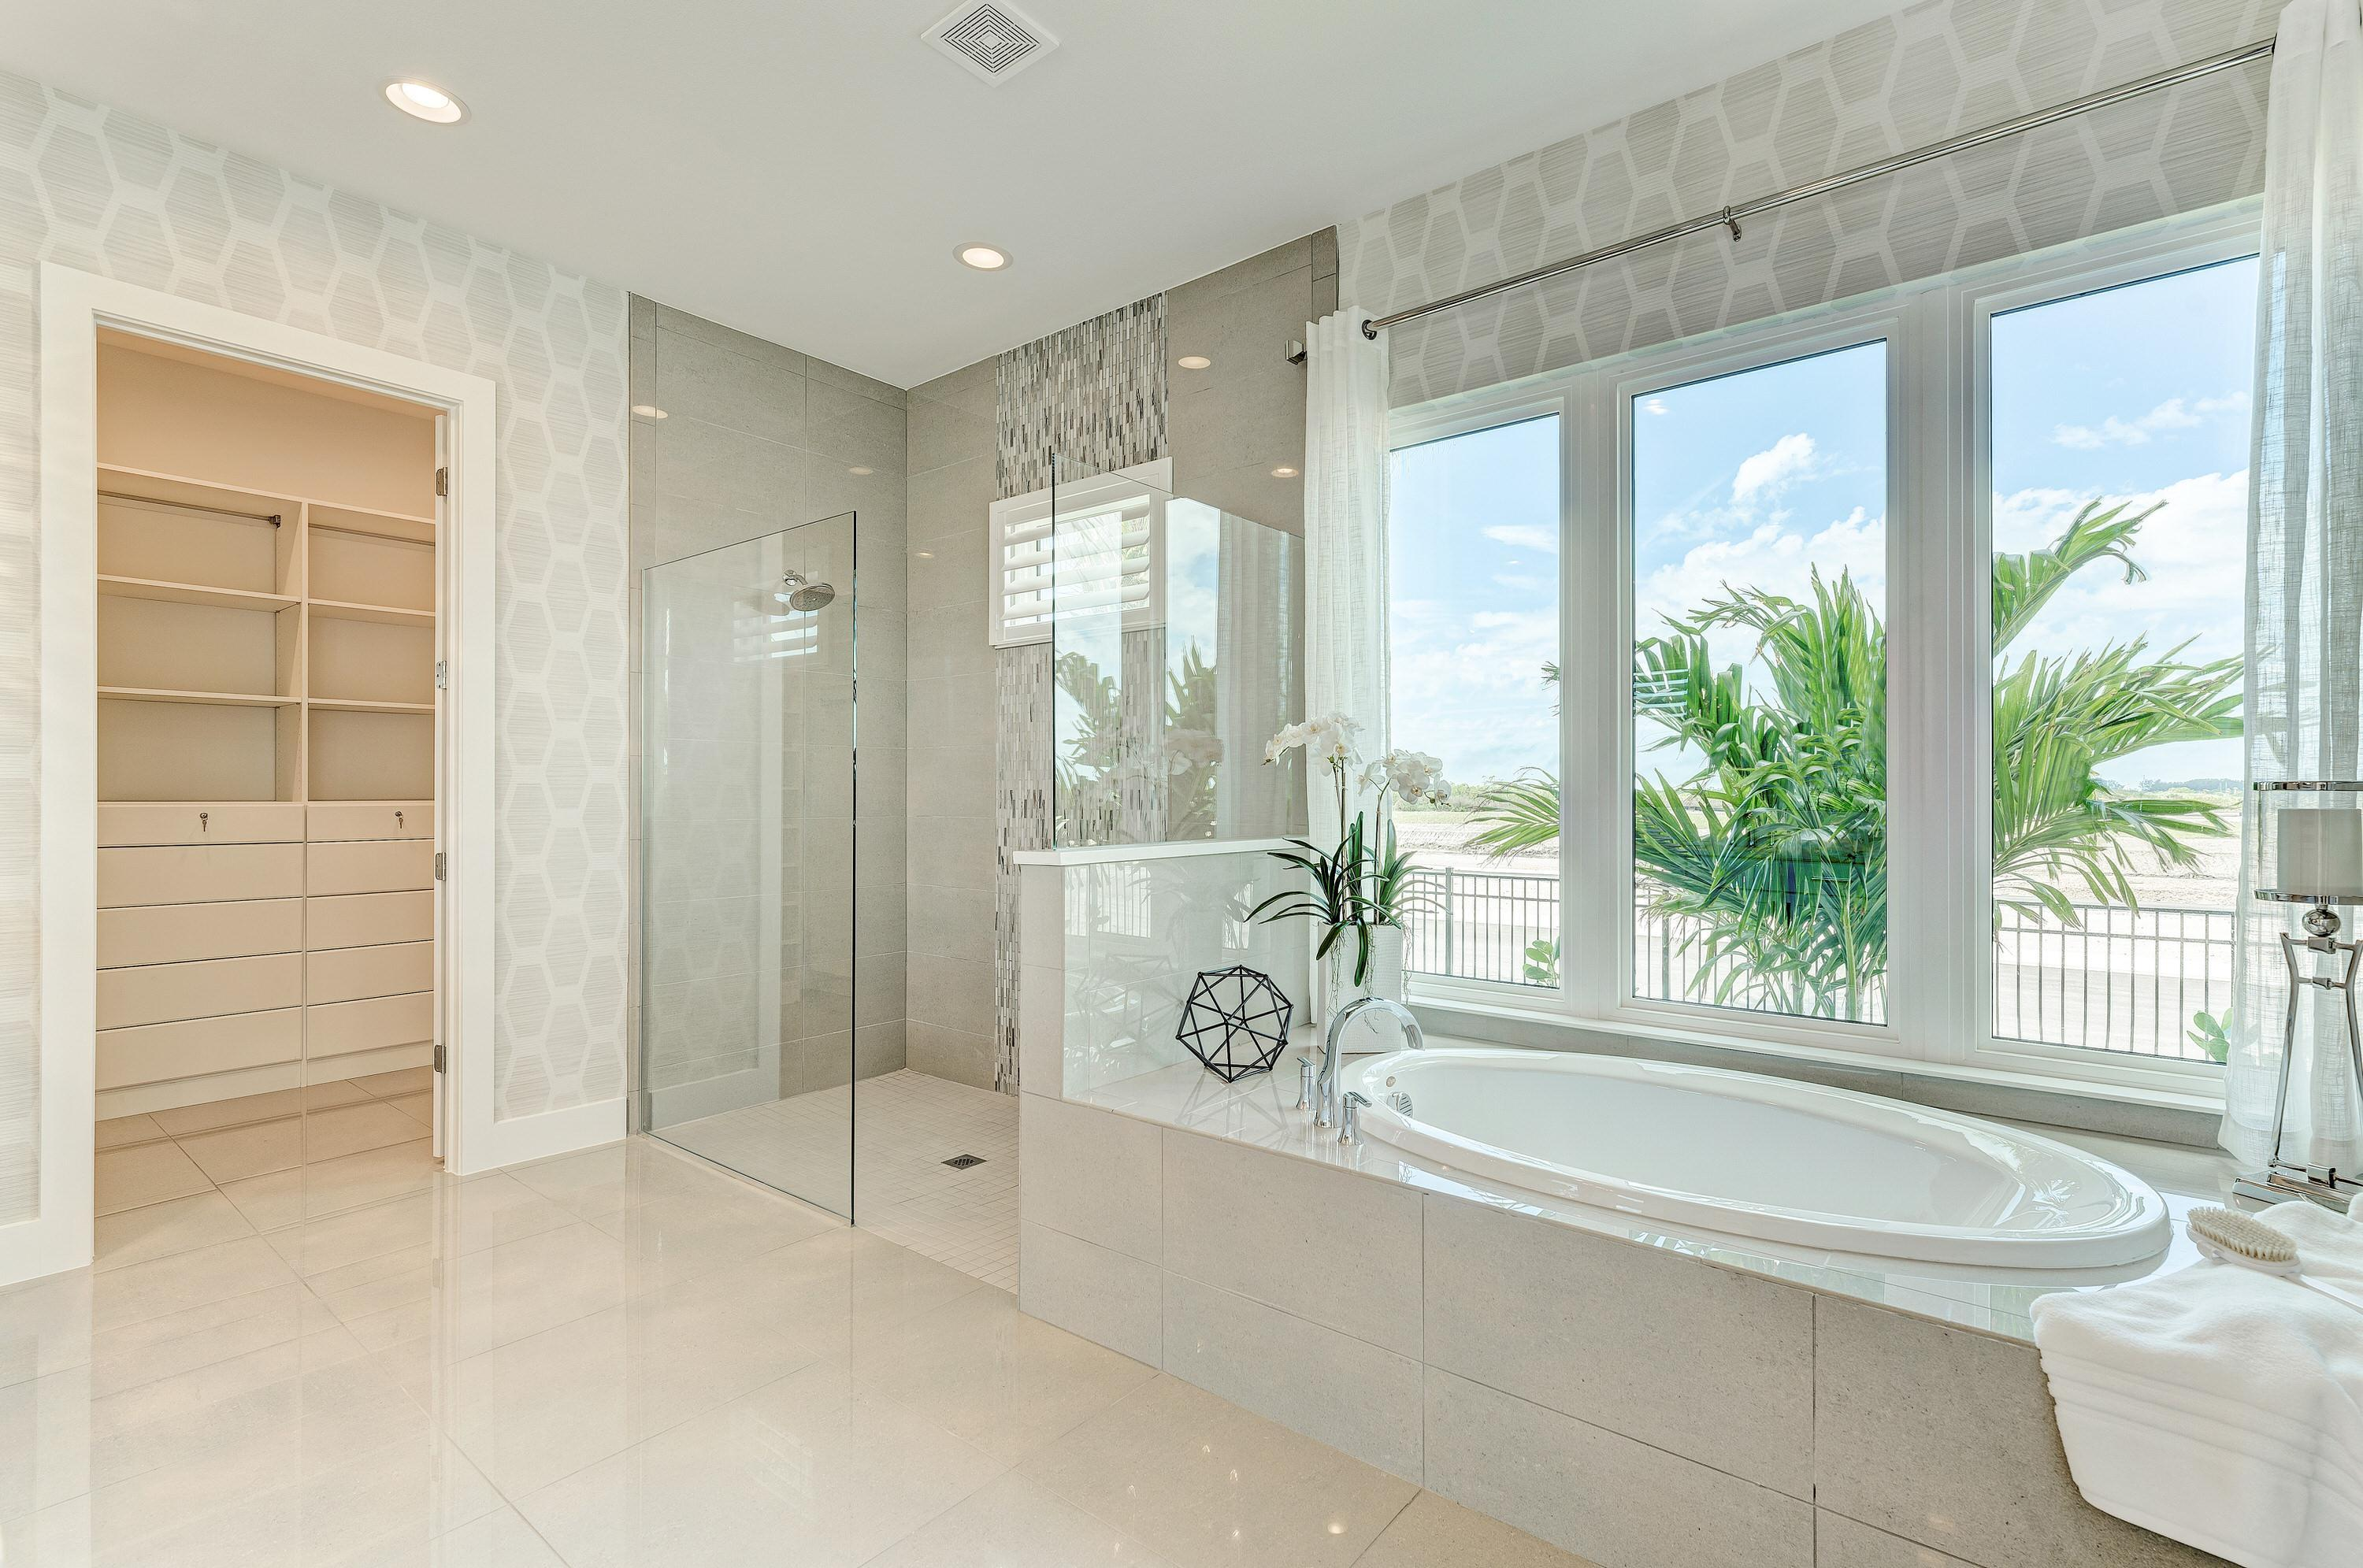 Bathroom featured in the Cat Claw By Medallion Home in Sarasota-Bradenton, FL